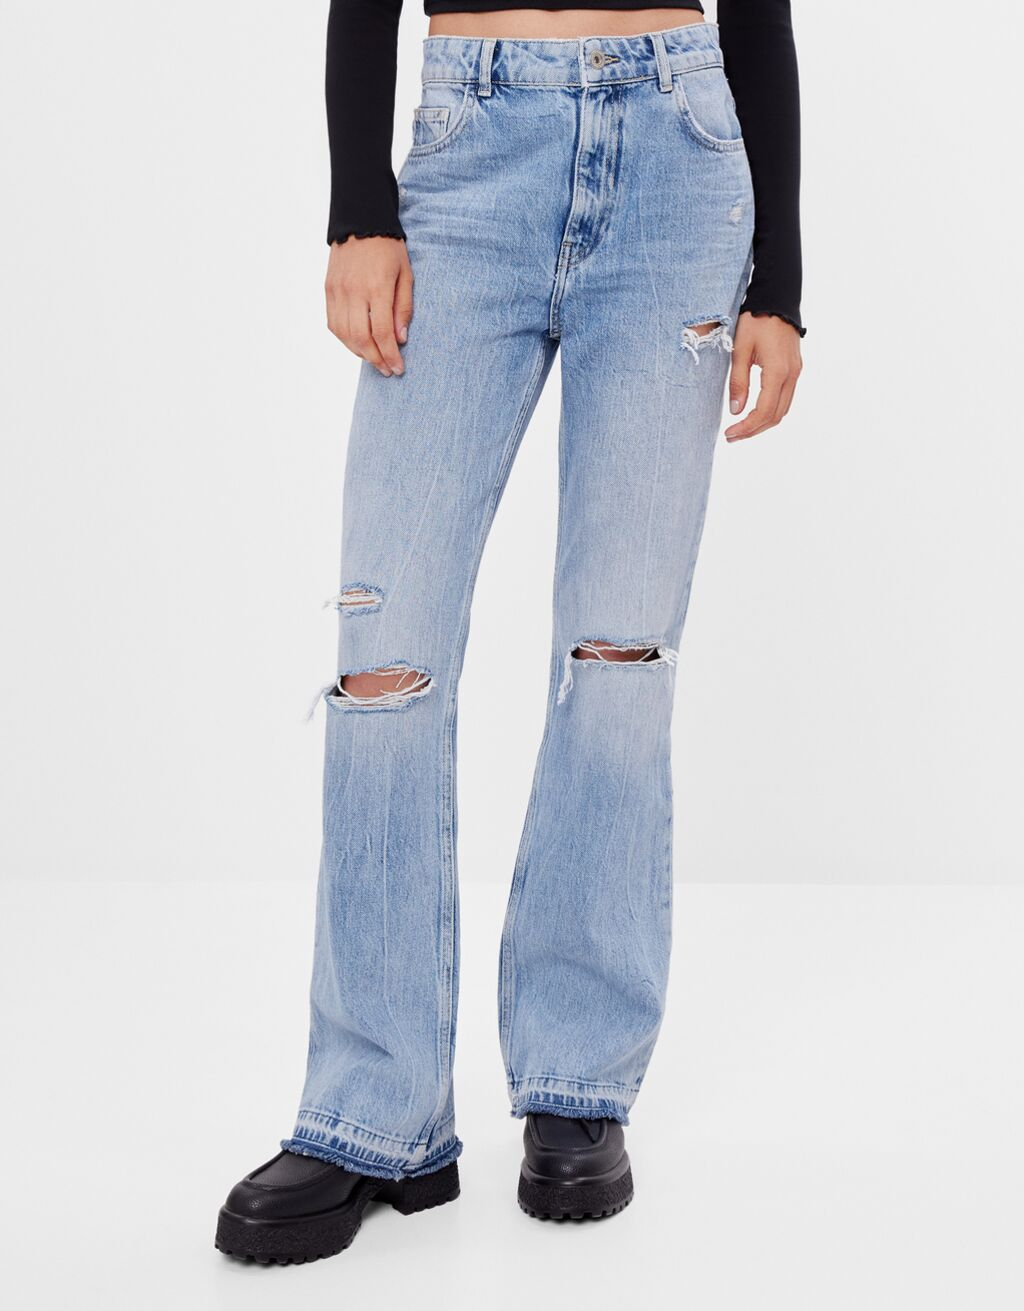 Jeans Flare Fit con rotos